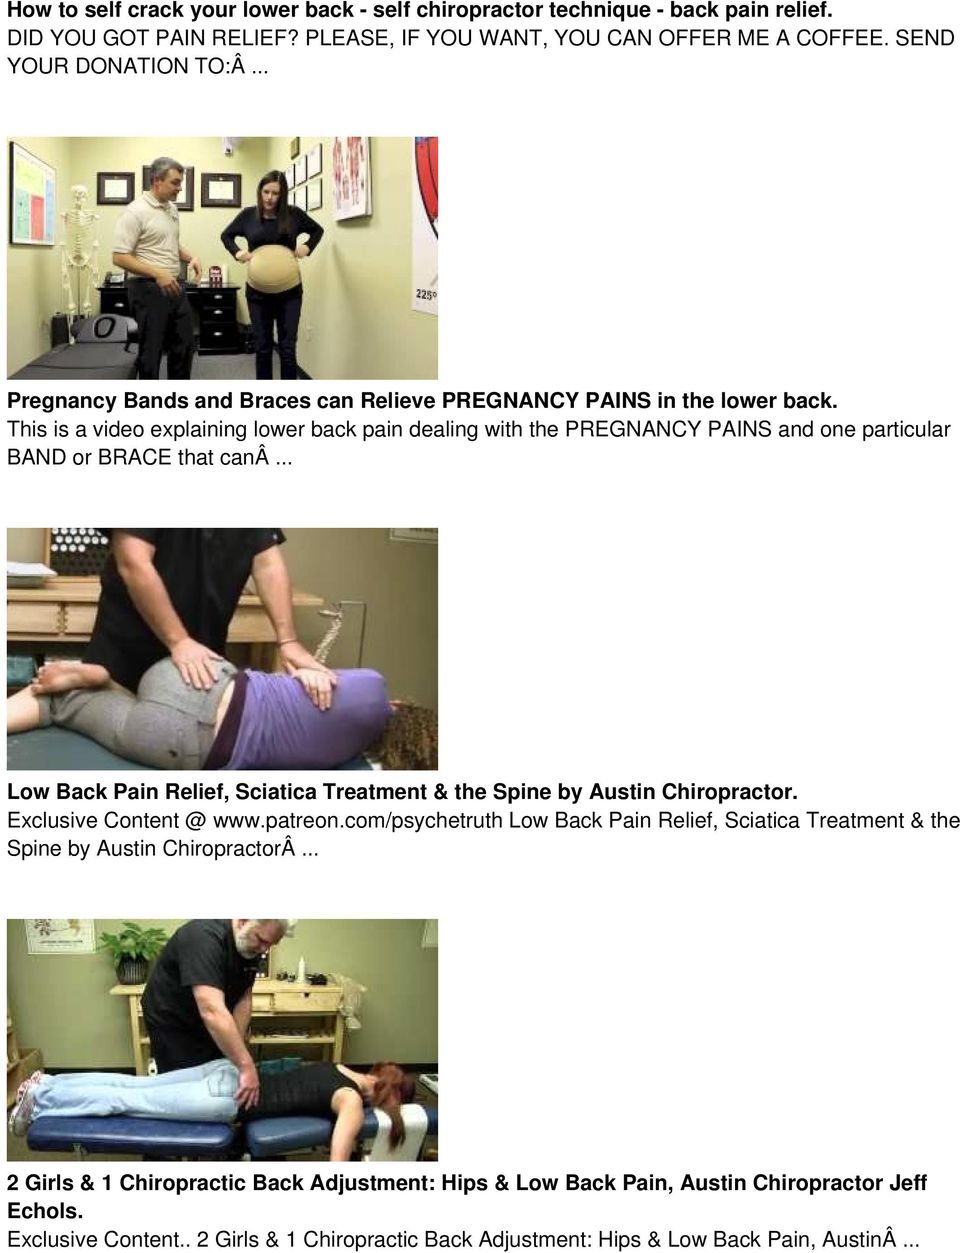 This is a video explaining lower back pain dealing with the PREGNANCY PAINS and one particular BAND or BRACE that canâ.